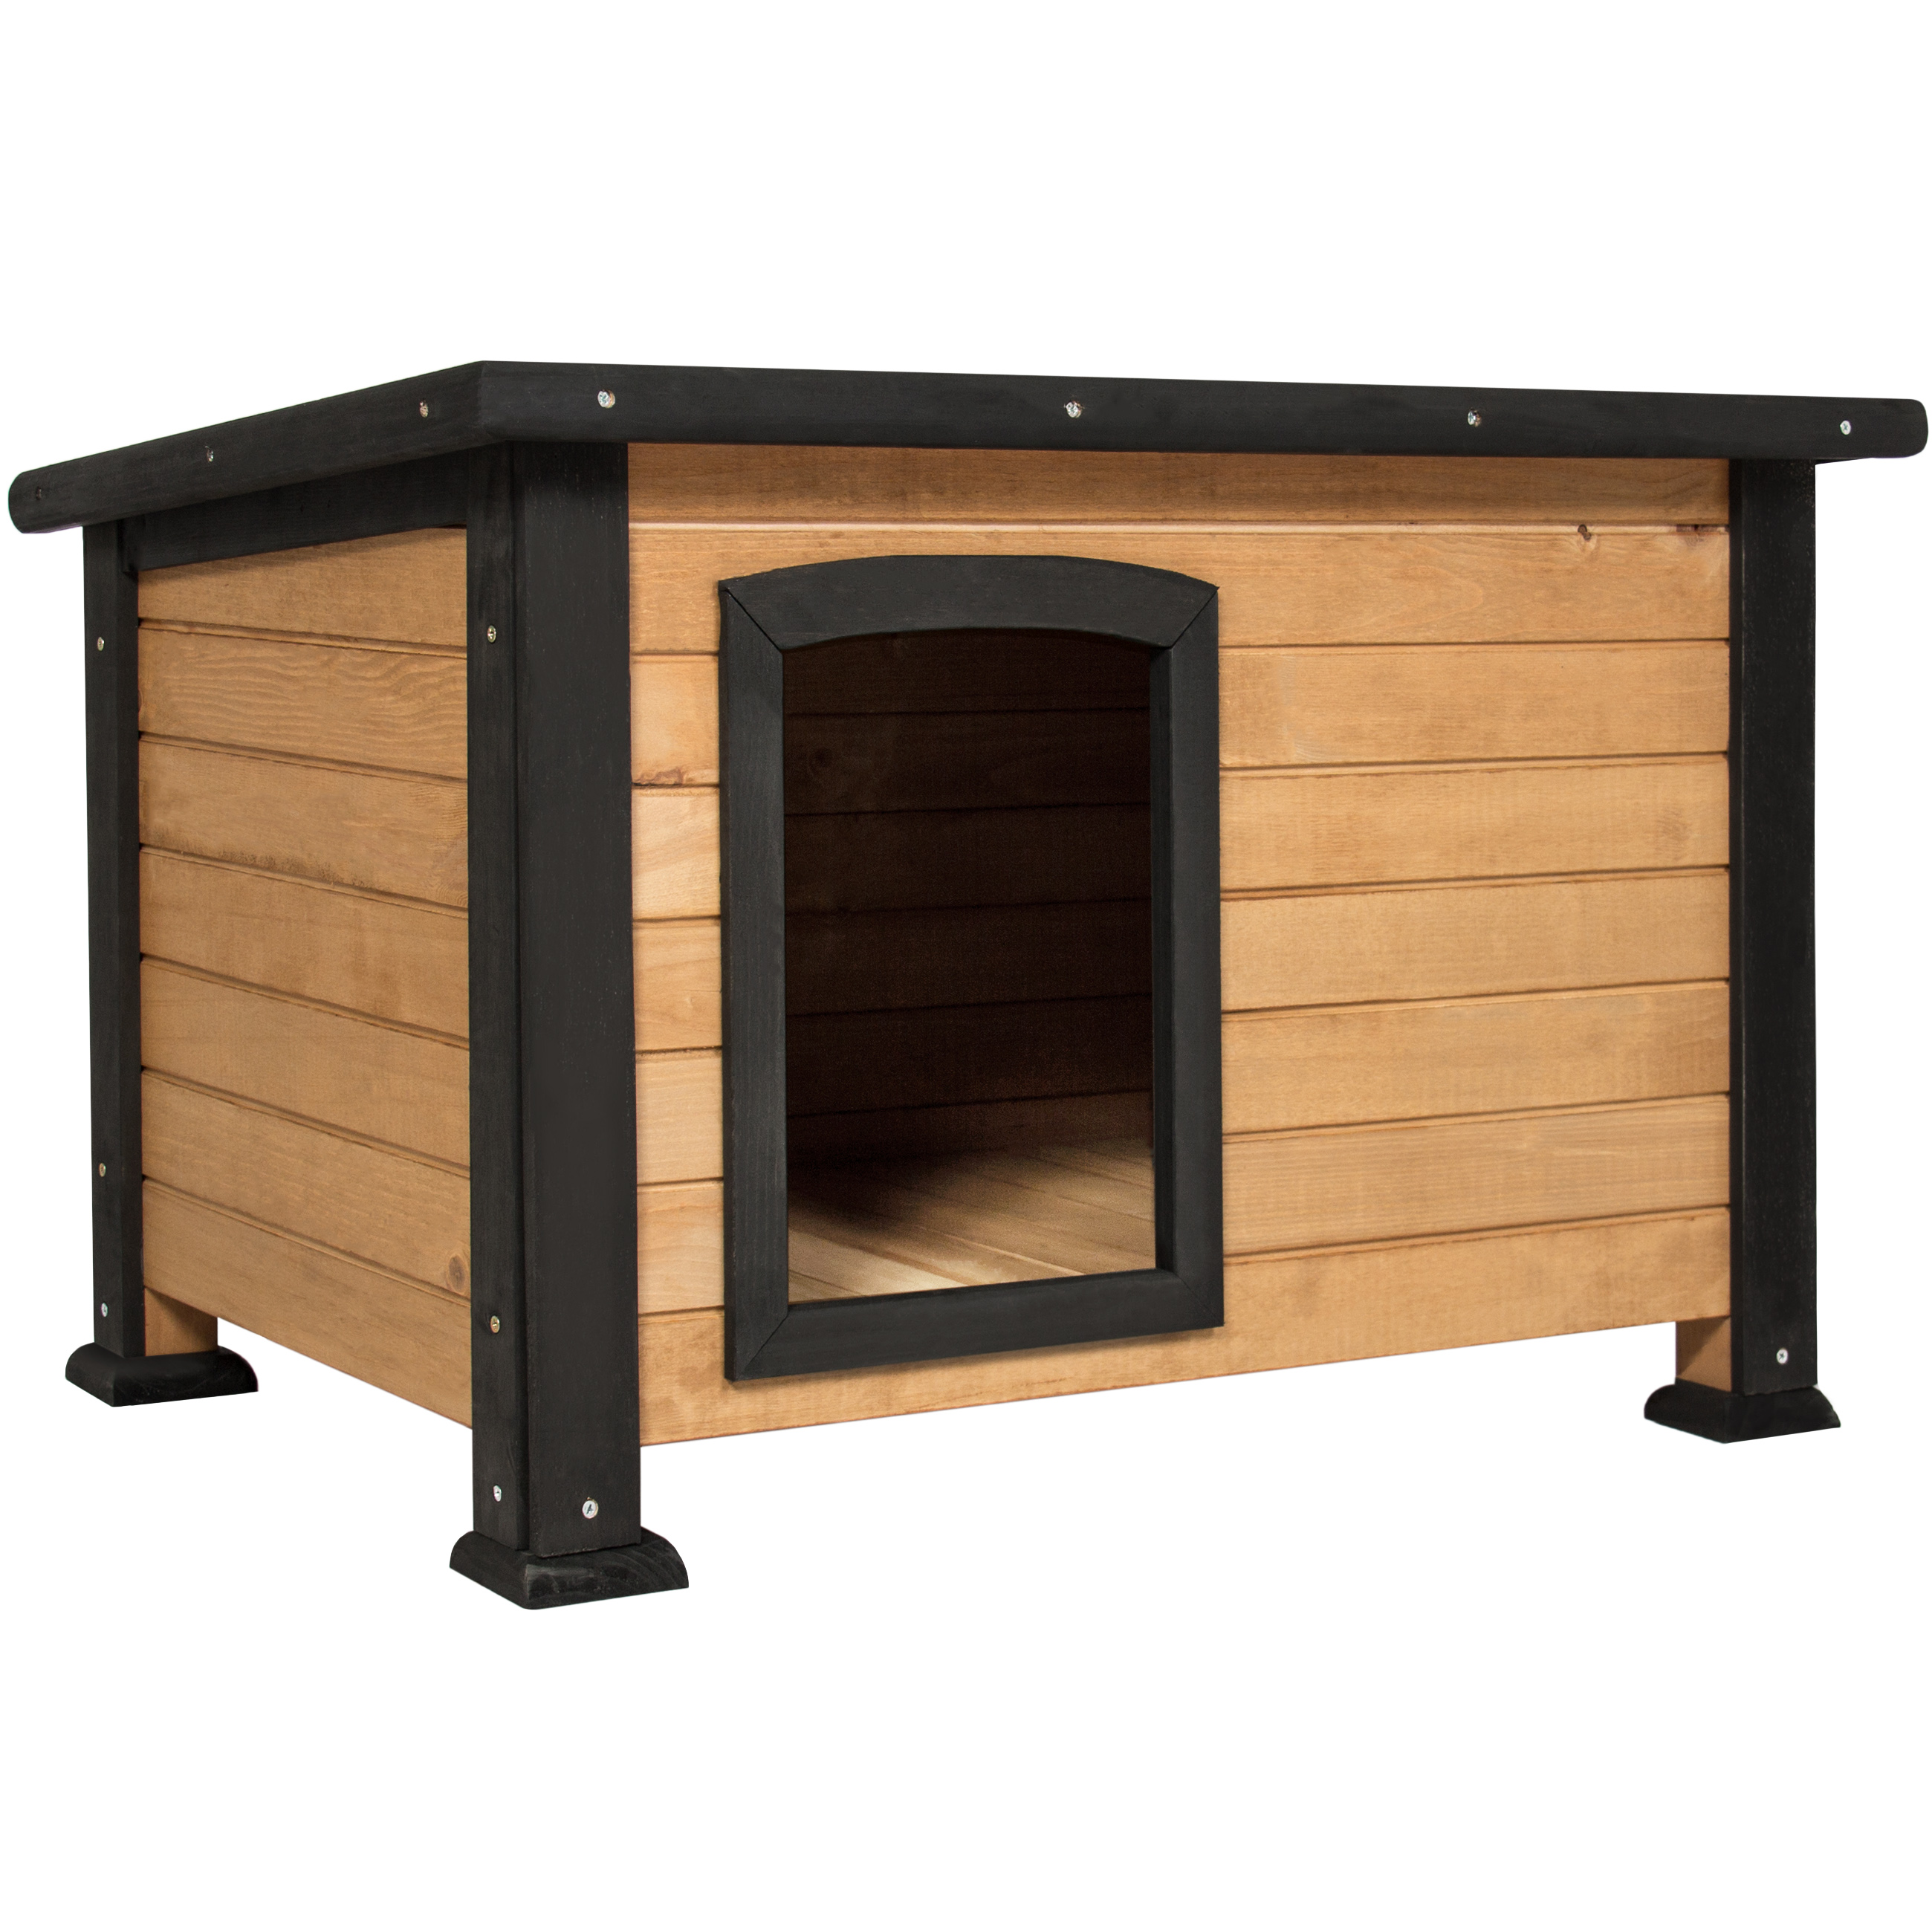 Best Choice Products Wooden Log Cabin Dog House w/ Opening Roof for Small Dogs, Outdoor Kennel, Pet Shelter -Brown